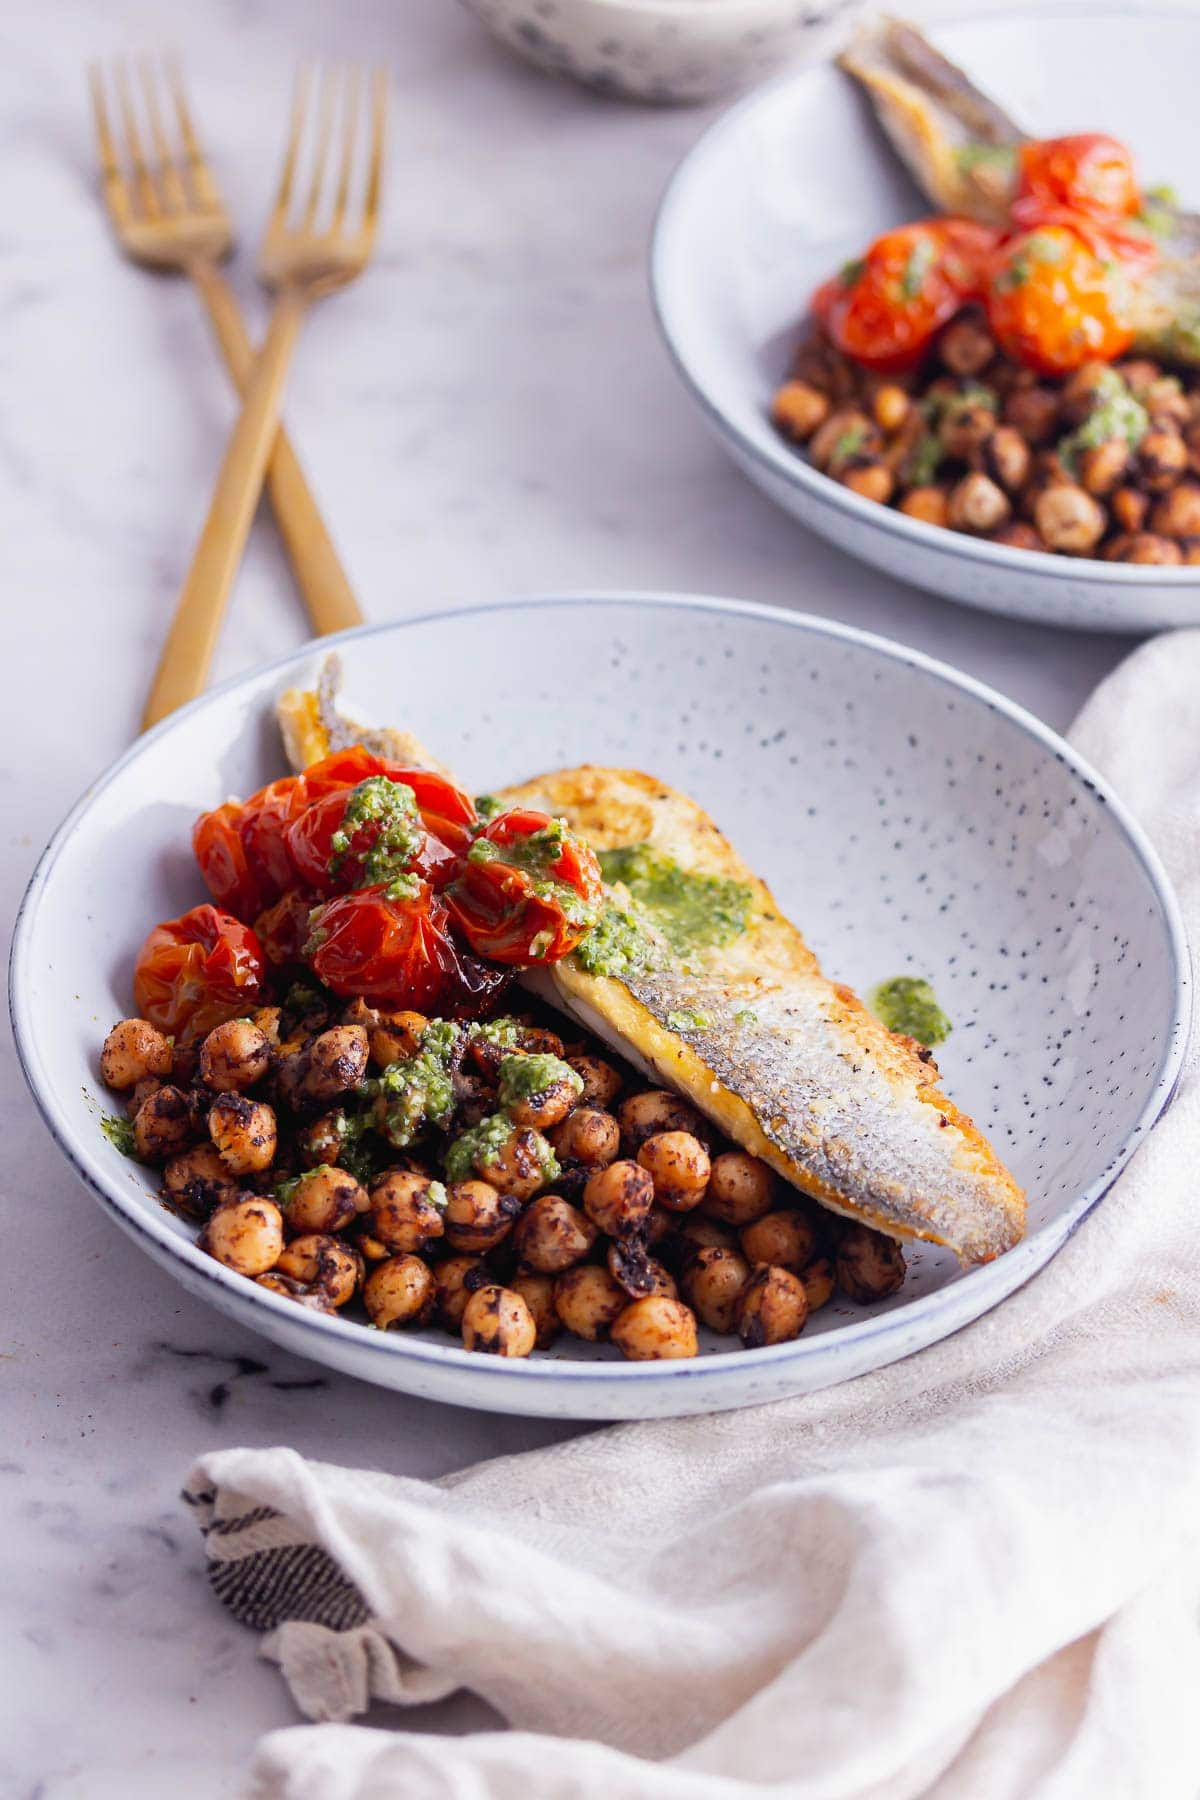 Blue bowl of pan fried sea bass with chickpeas on a marble background